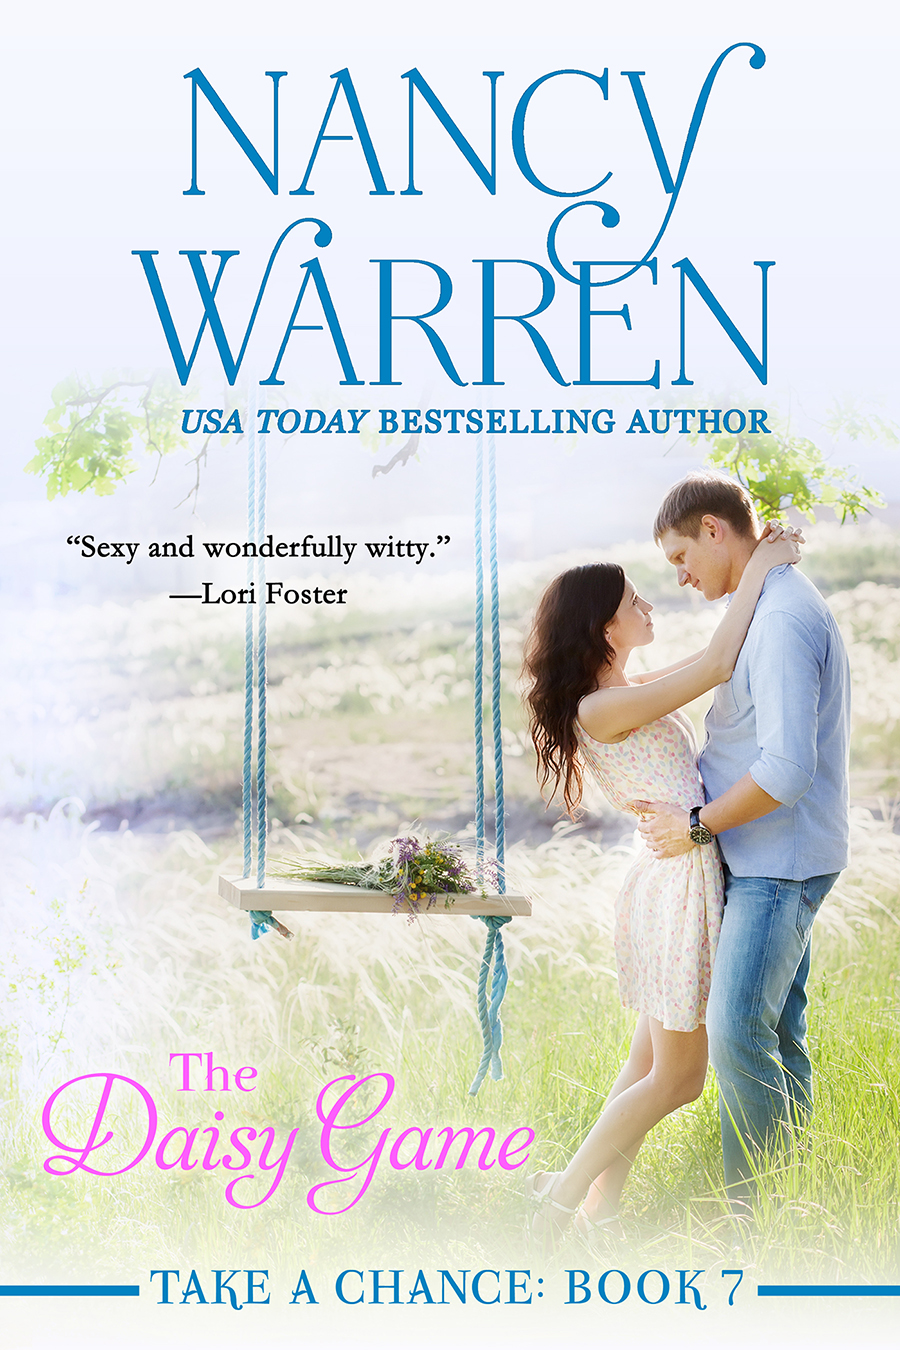 The Daisy Game (Take a Chance Book 7)